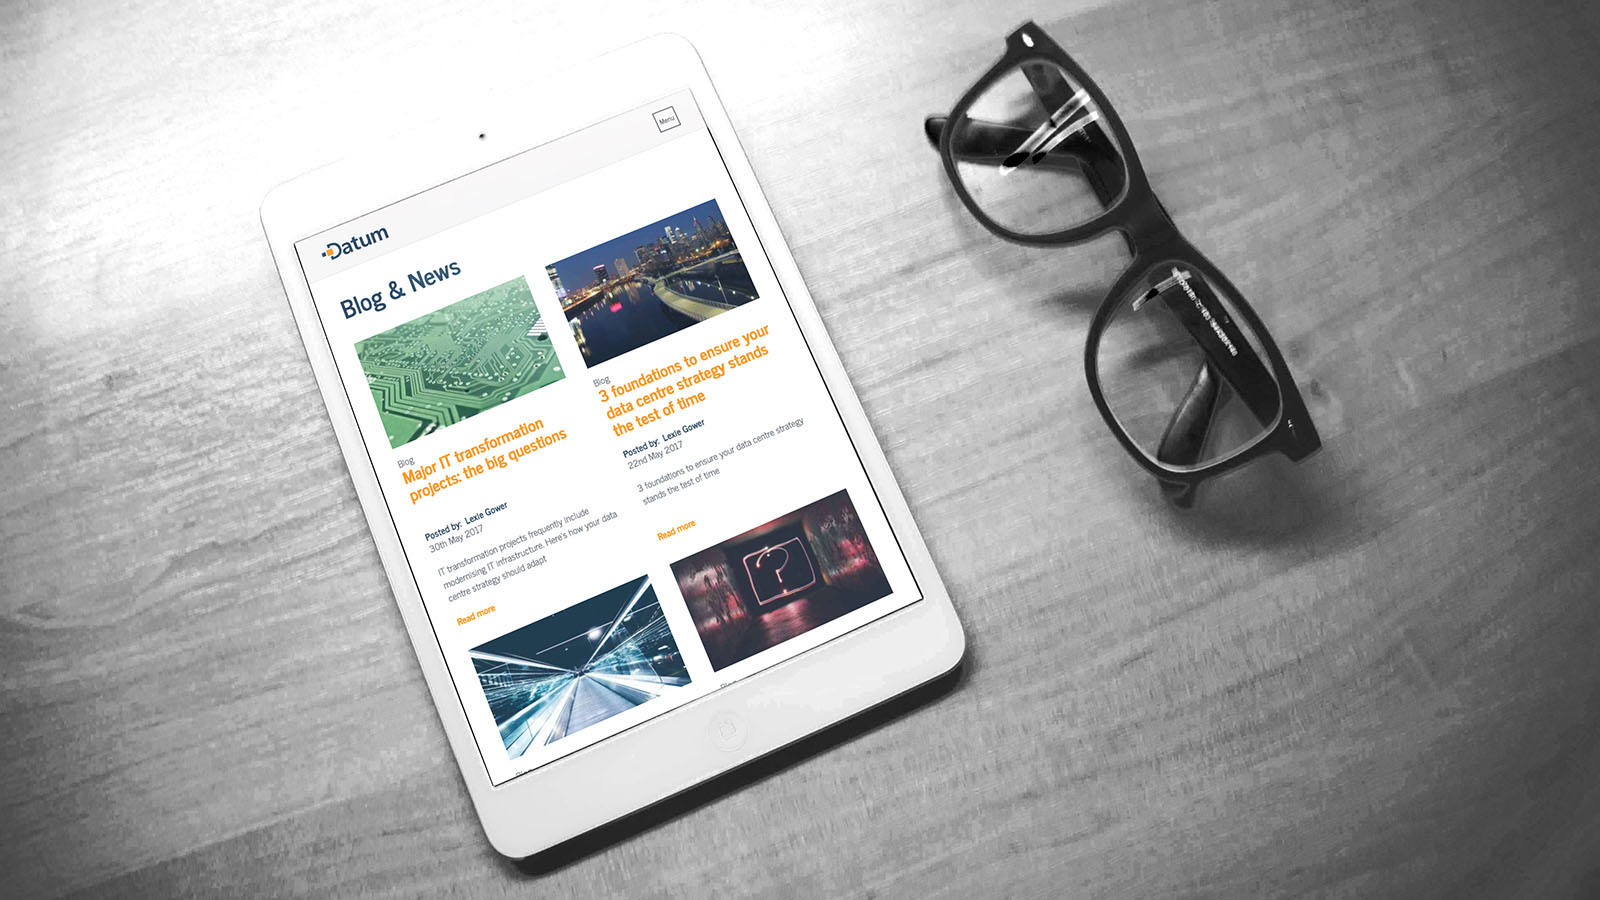 The blog page shown on an Apple iPad which is laid on a desk next to a pair of reading glasses.